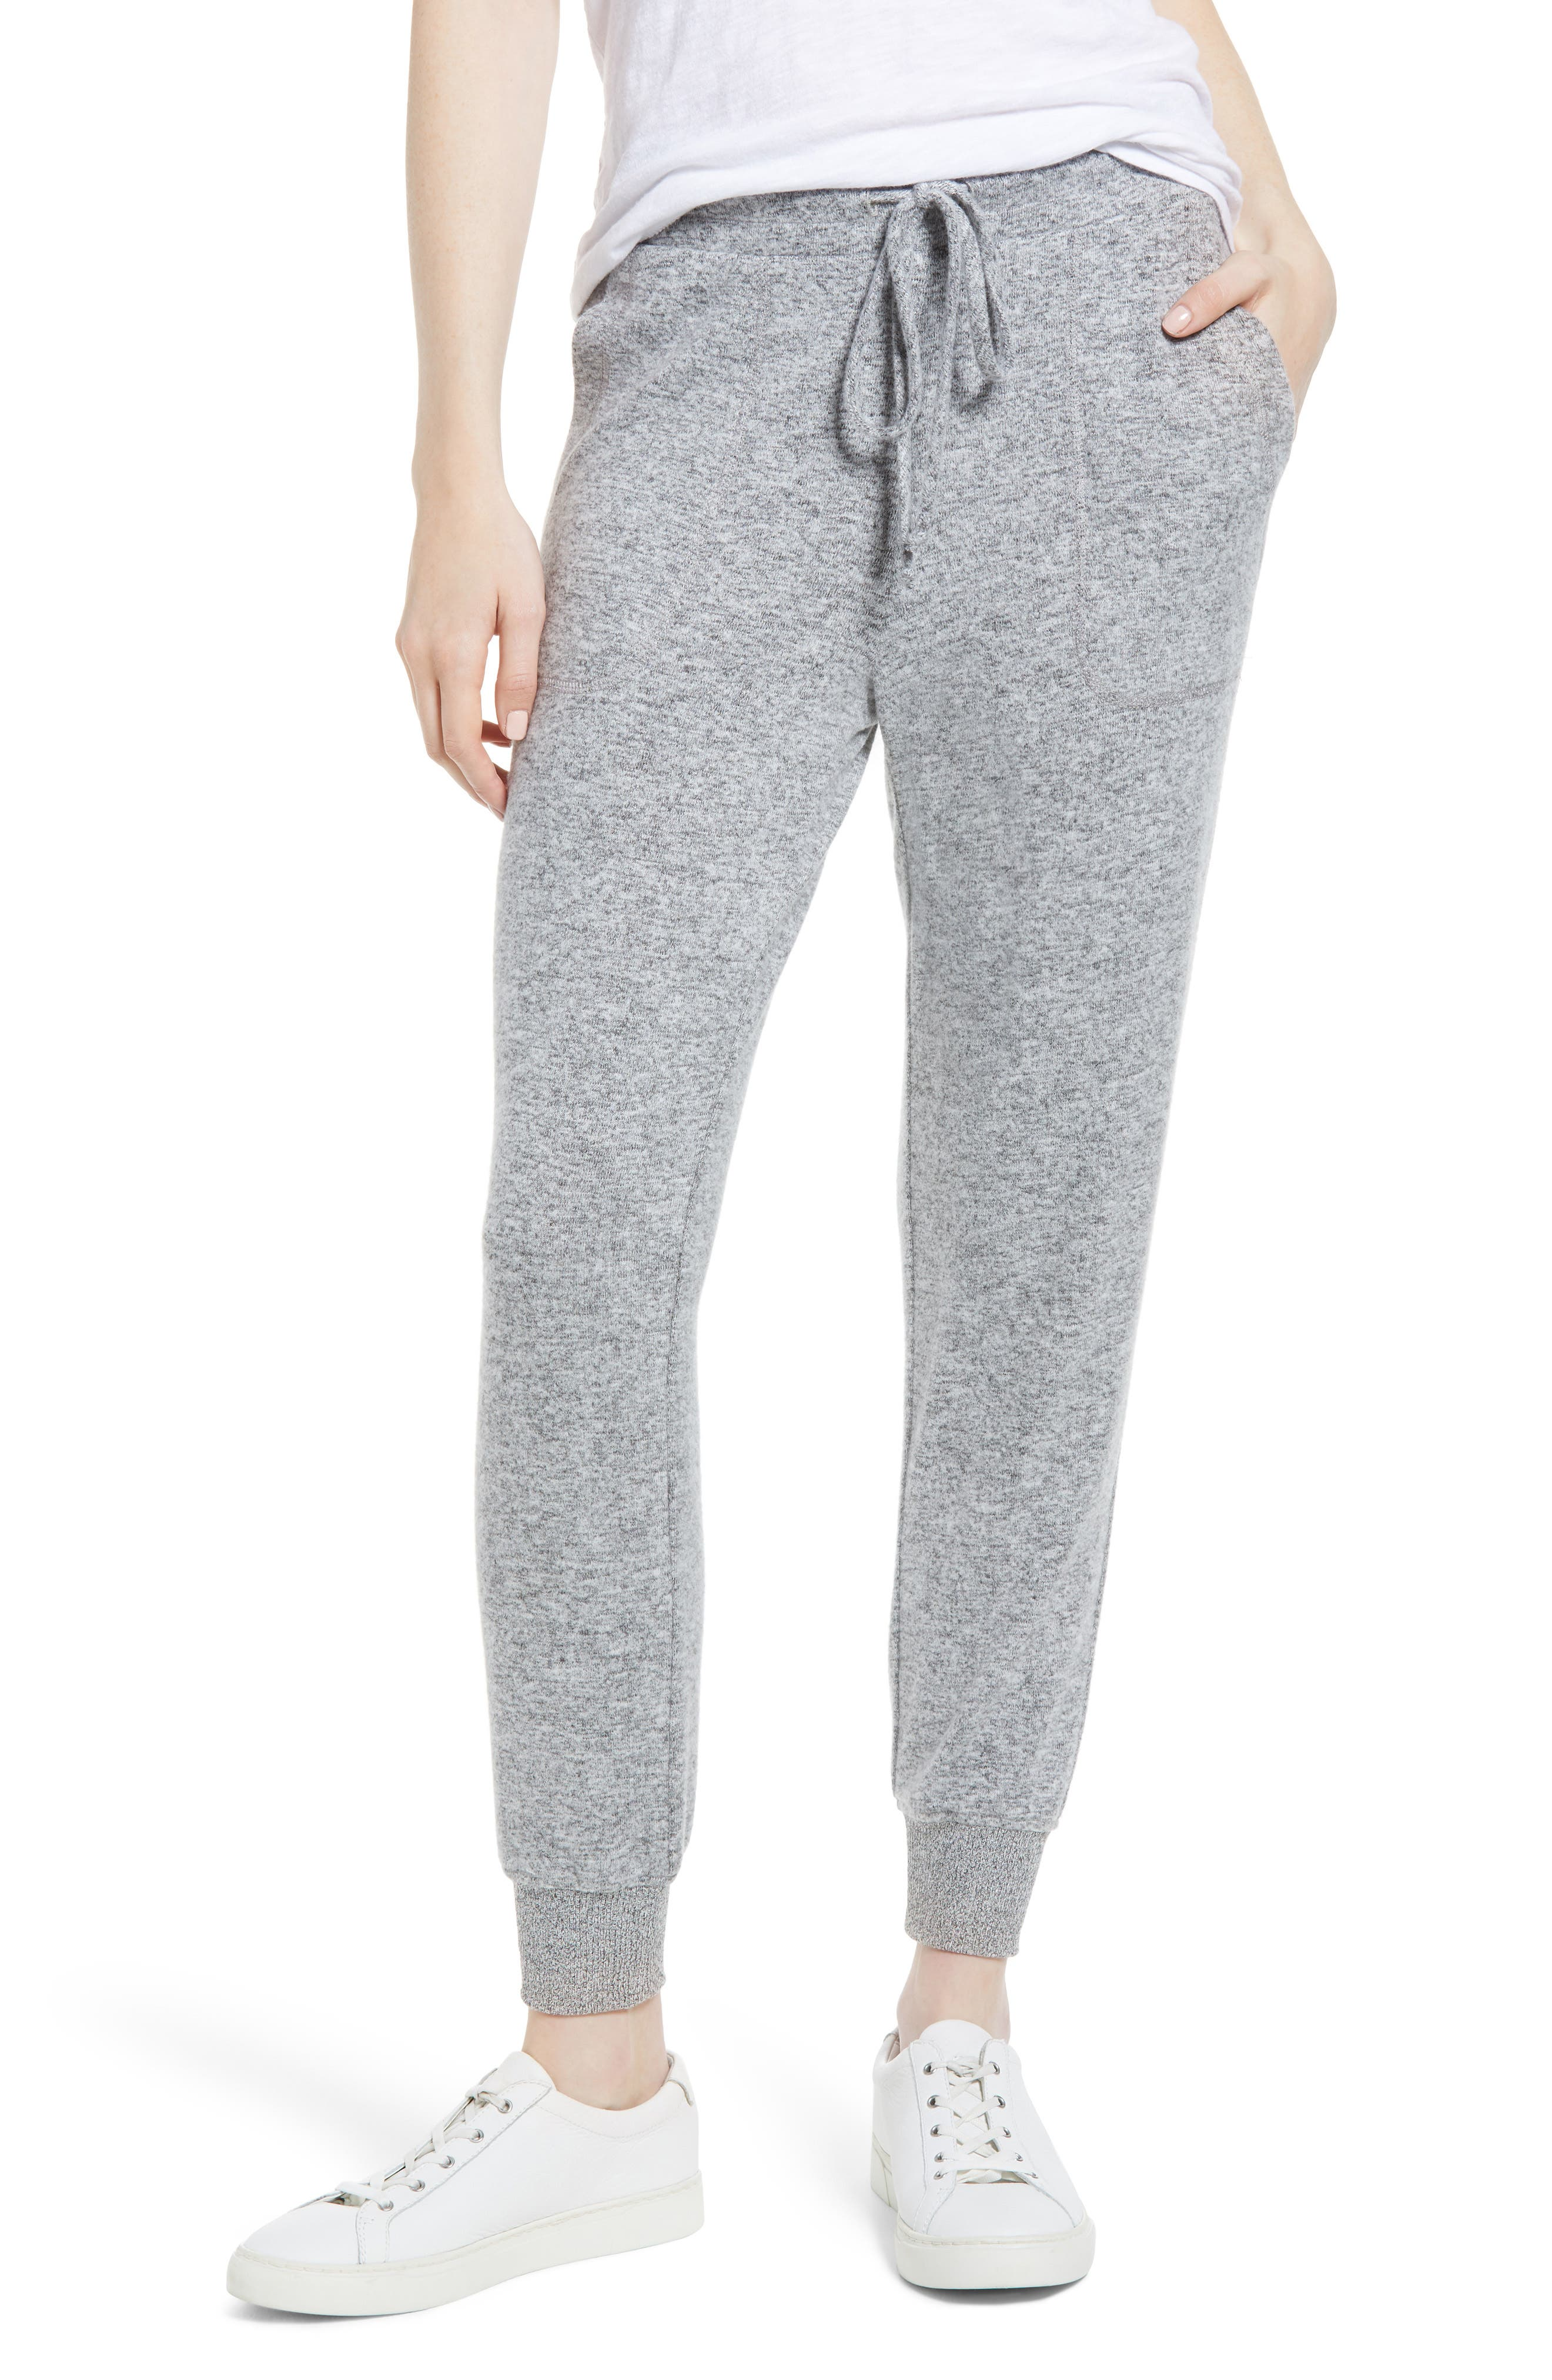 x Living in Yellow Skye Cozy Jogger Pants,                         Main,                         color, Heather Grey